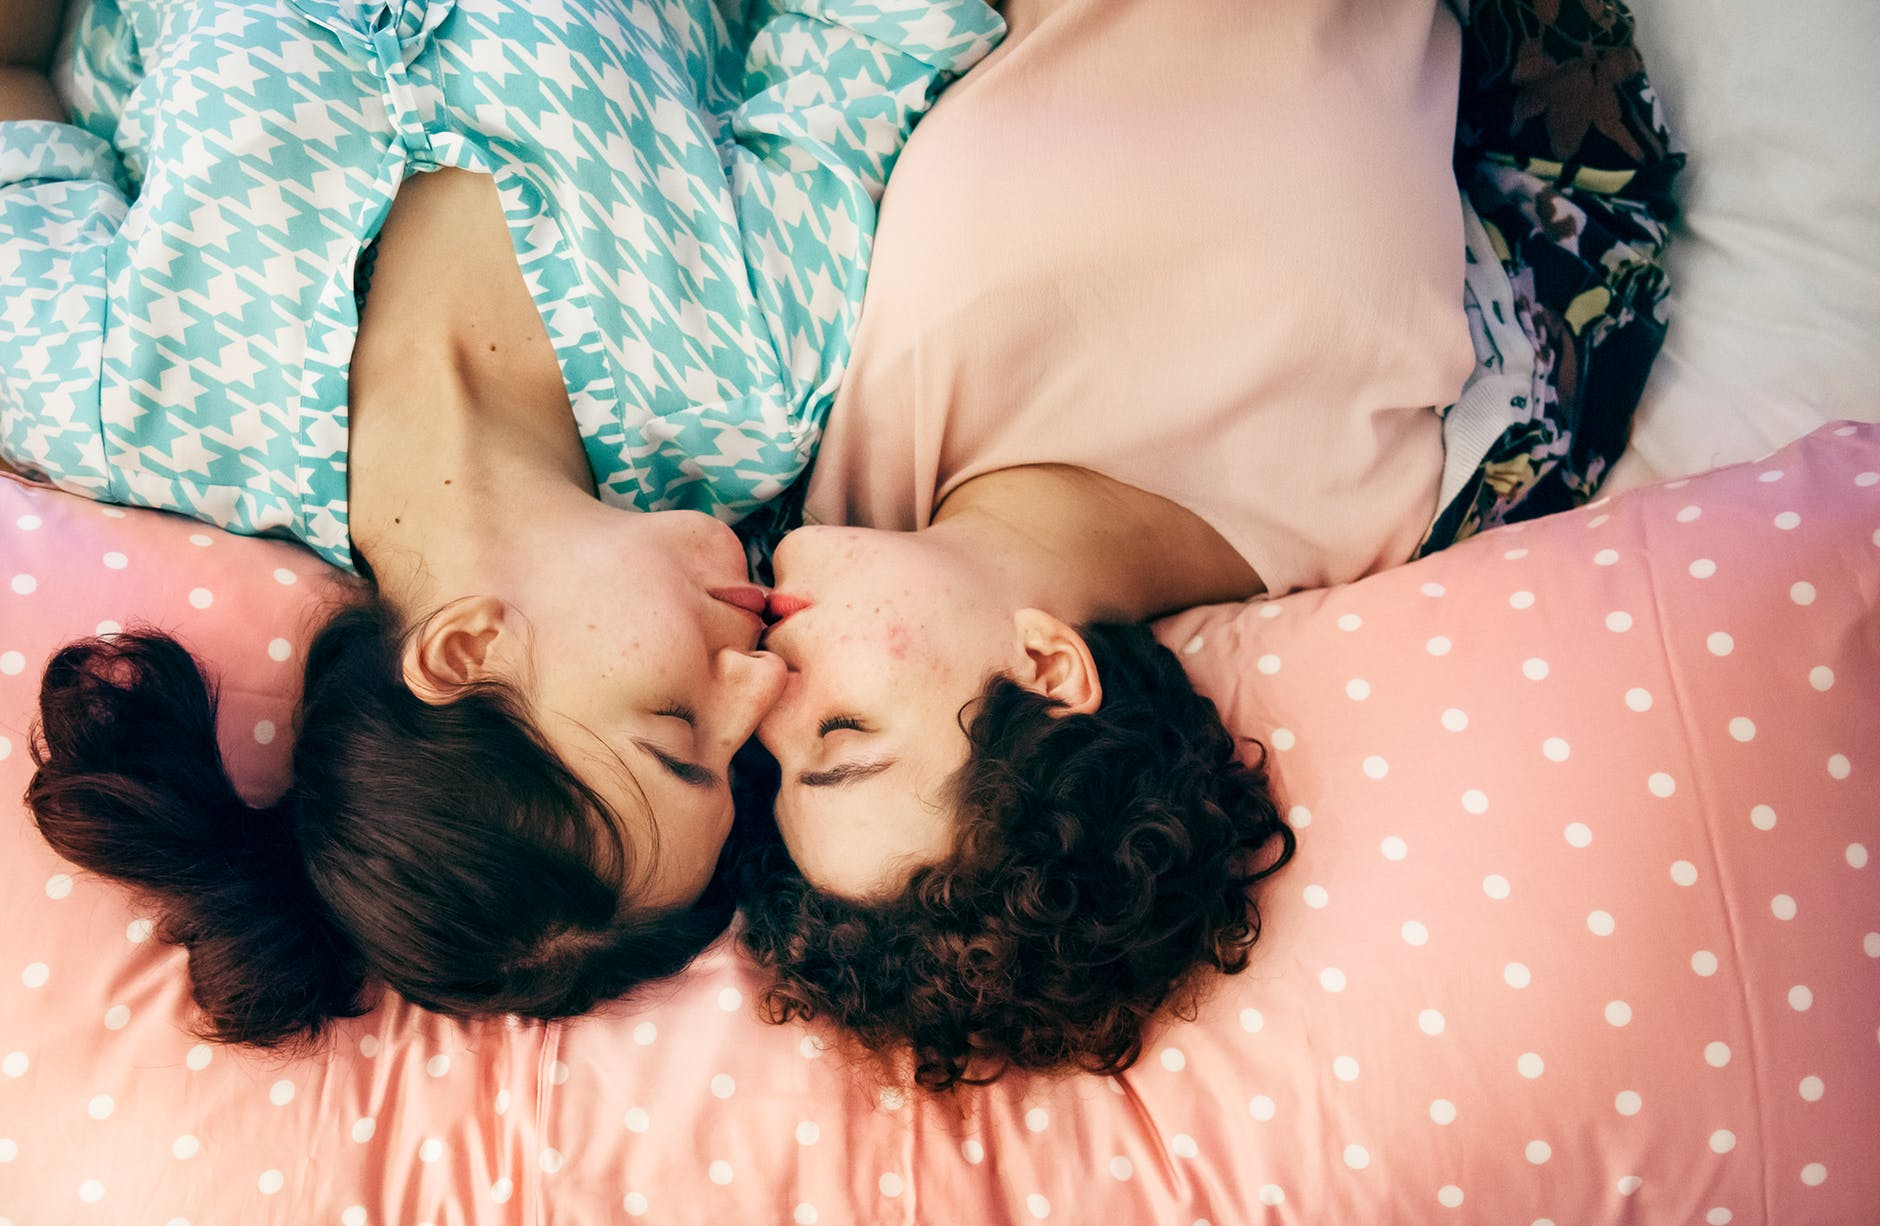 two woman kissing on bed